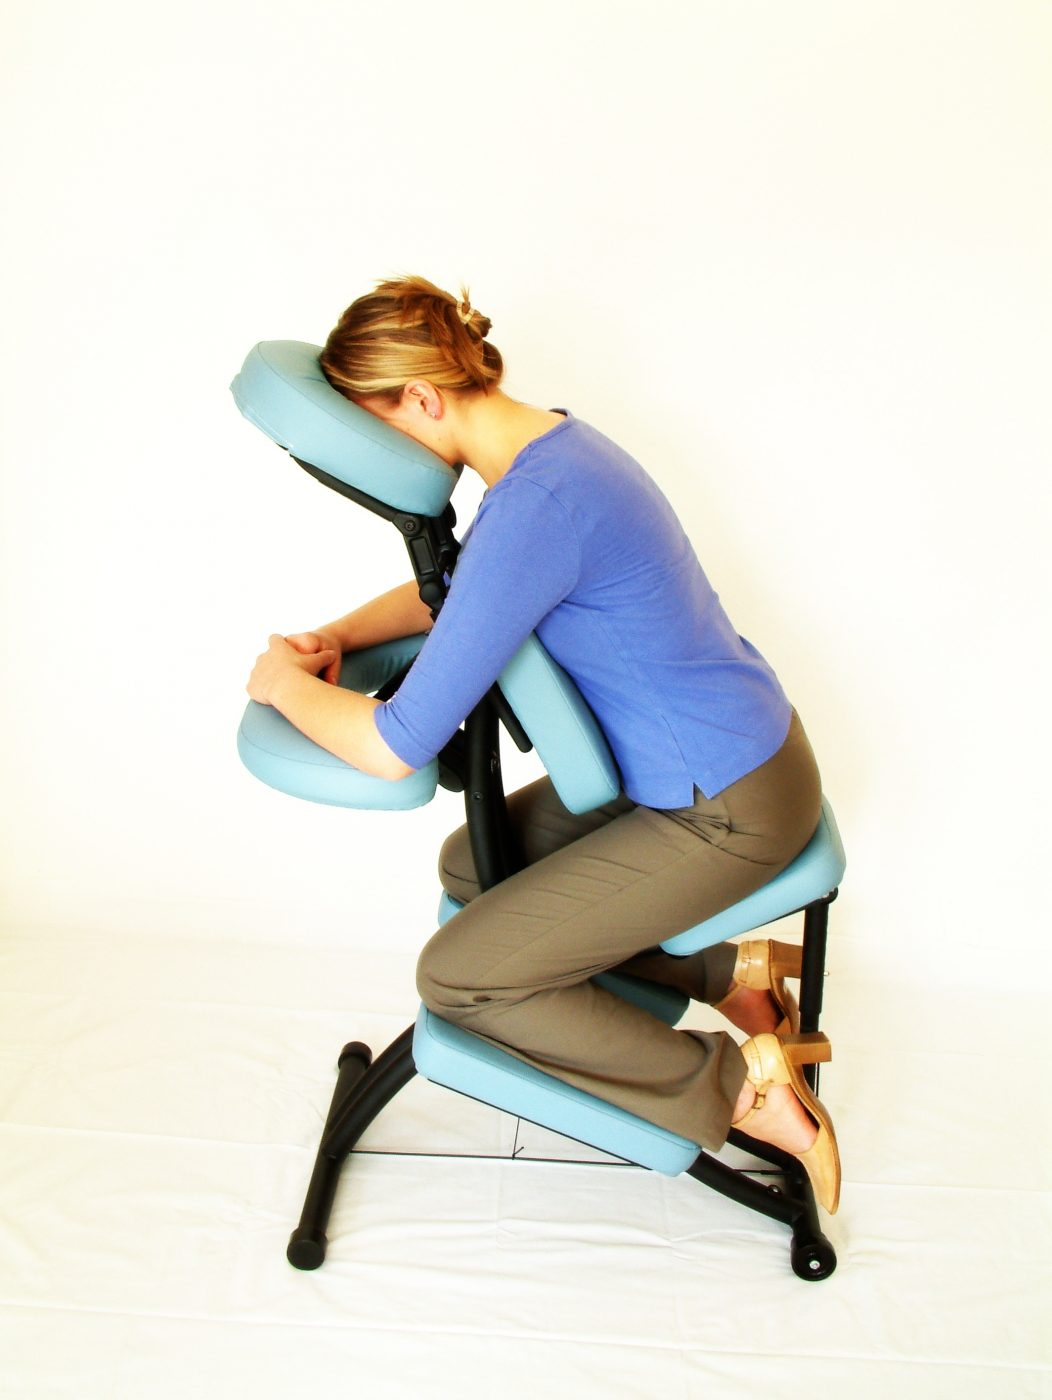 massage-chair-photographer-pixx